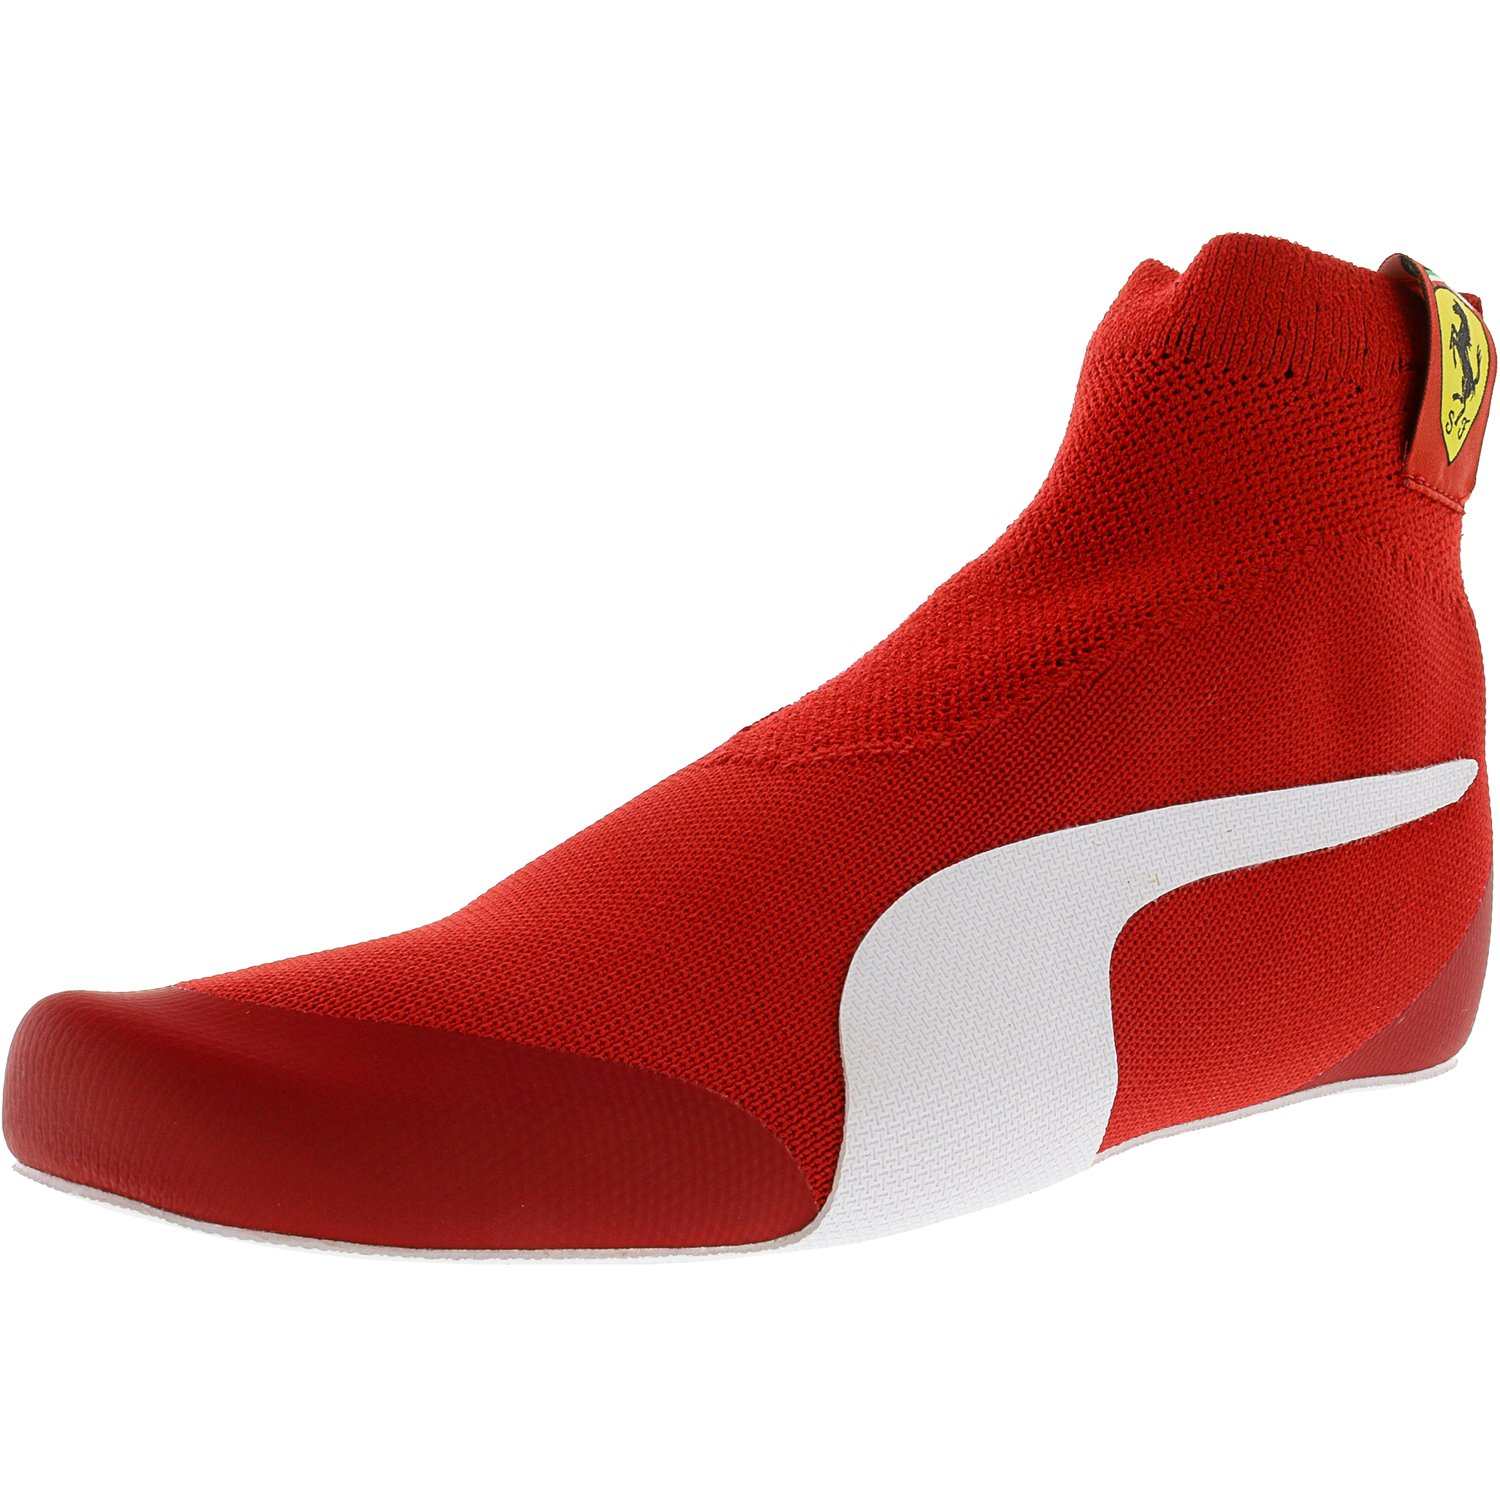 Puma Men's Ferrari Driver Evoknit Replica Rosso Corsa   White Black Ankle-High Fashion Sneaker 10.5M by Puma